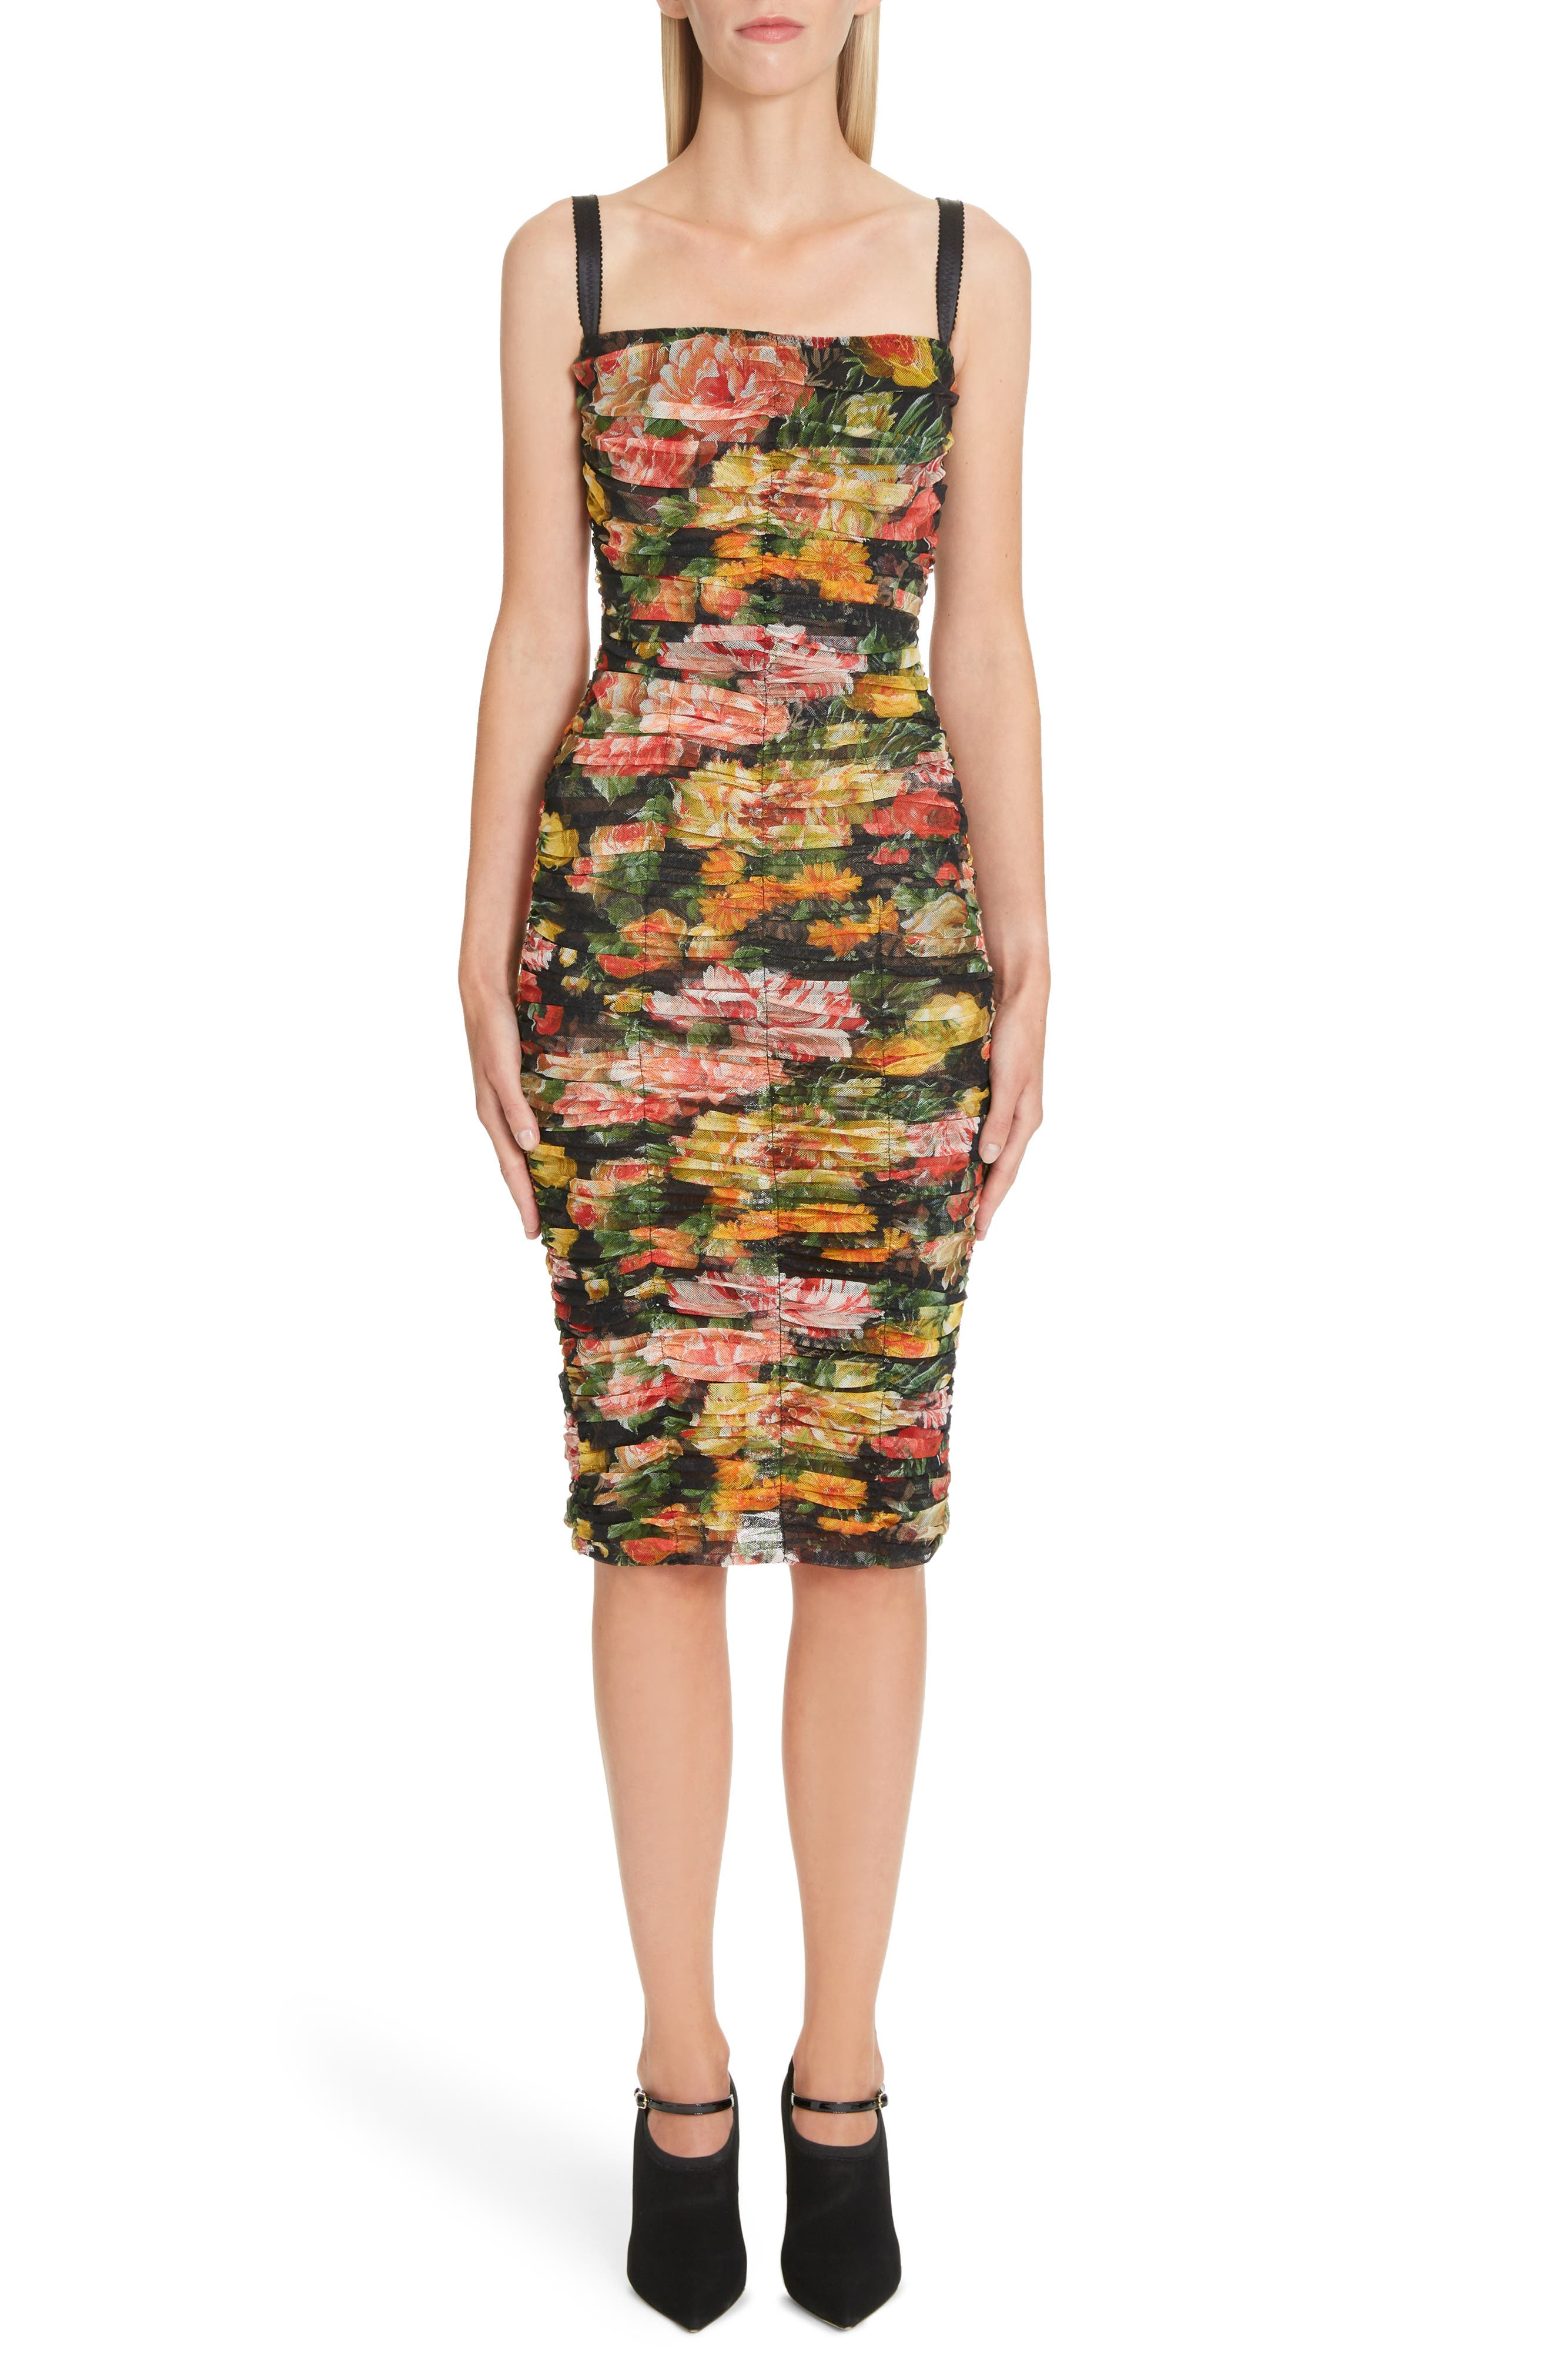 Dolce & gabbana Floral Print Ruched Tulle Body-Con Dress, US / 46 IT - Black